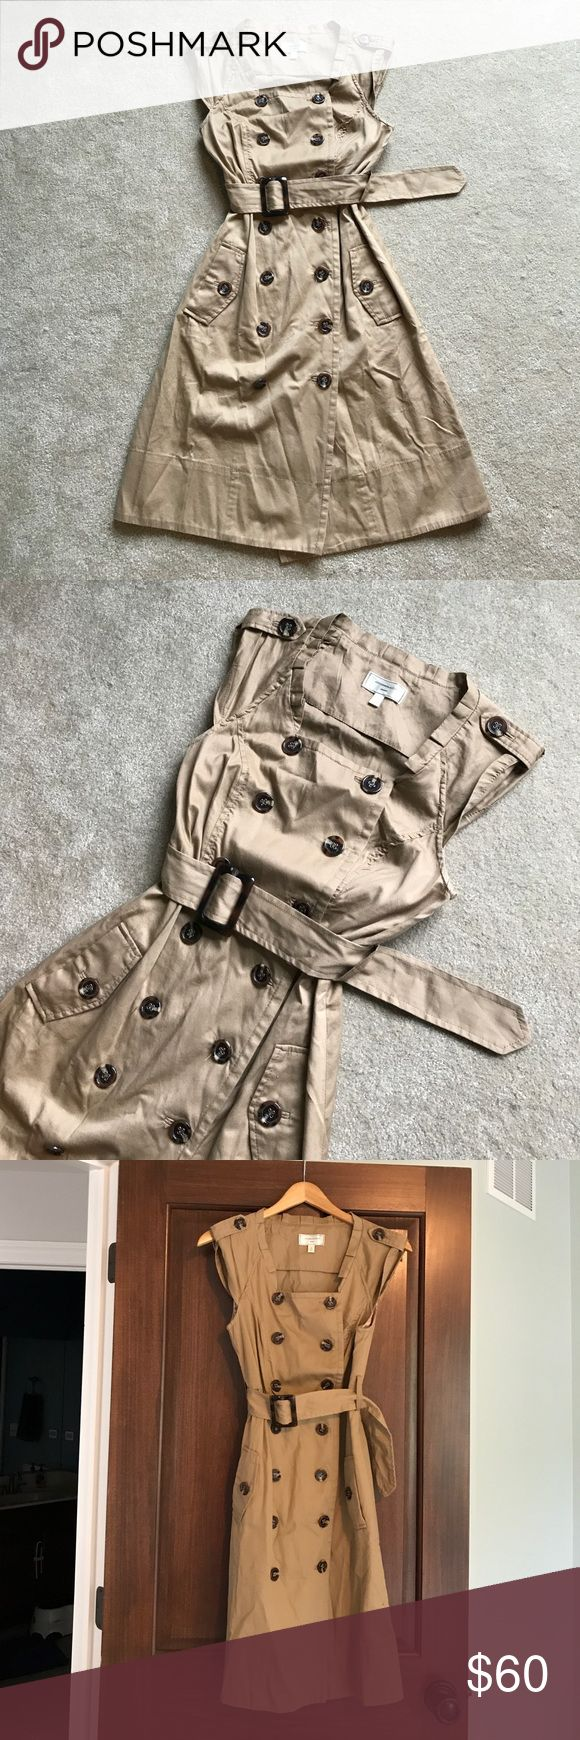 Designer Trench Coat Dress Adorable French trench coat dress. Pretty floral lining in pockets and at roll tab sleeves. Very well made. 100% cotton. EUC. Moulinette Soeurs Dresses Midi